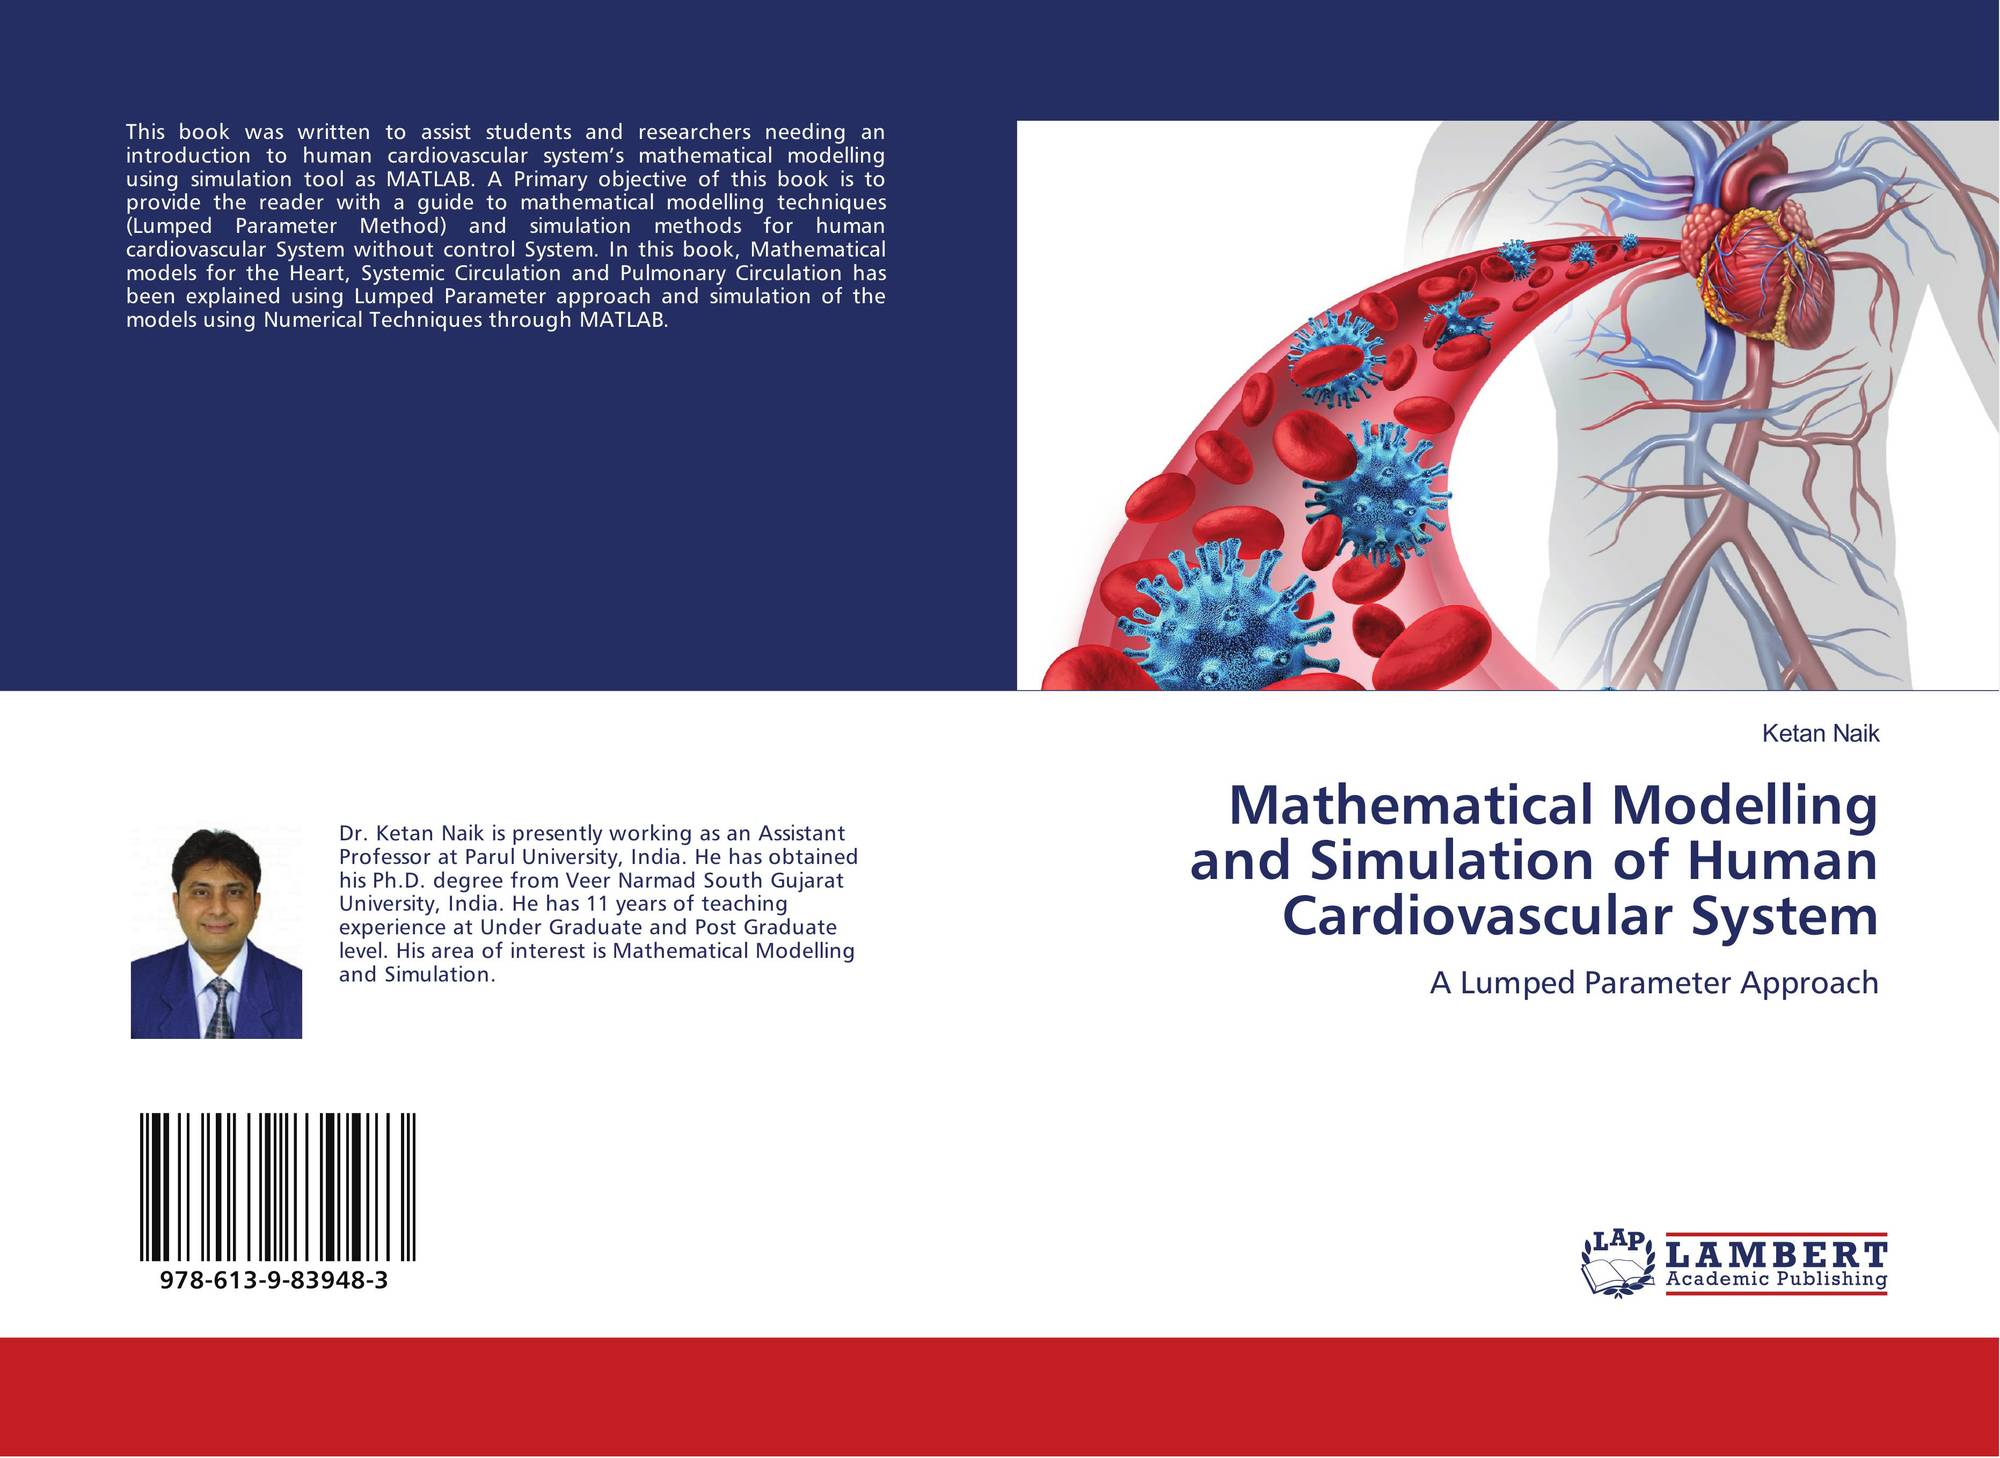 Mathematical Modelling And Simulation Of Human Cardiovascular System